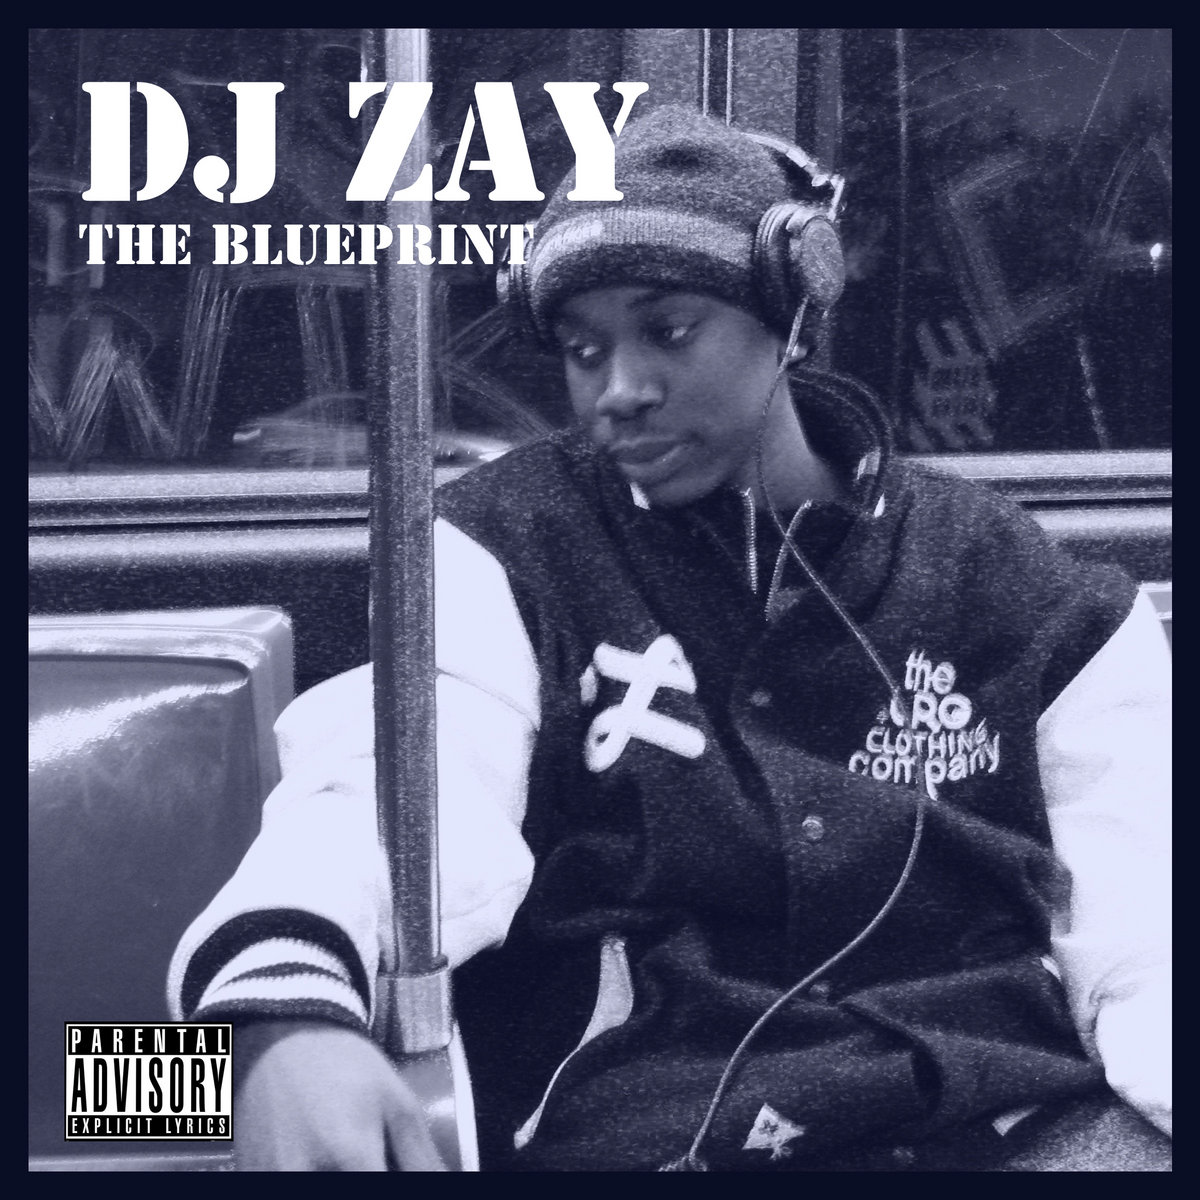 The blueprint a fair alternative dj zay by dj zay malvernweather Choice Image